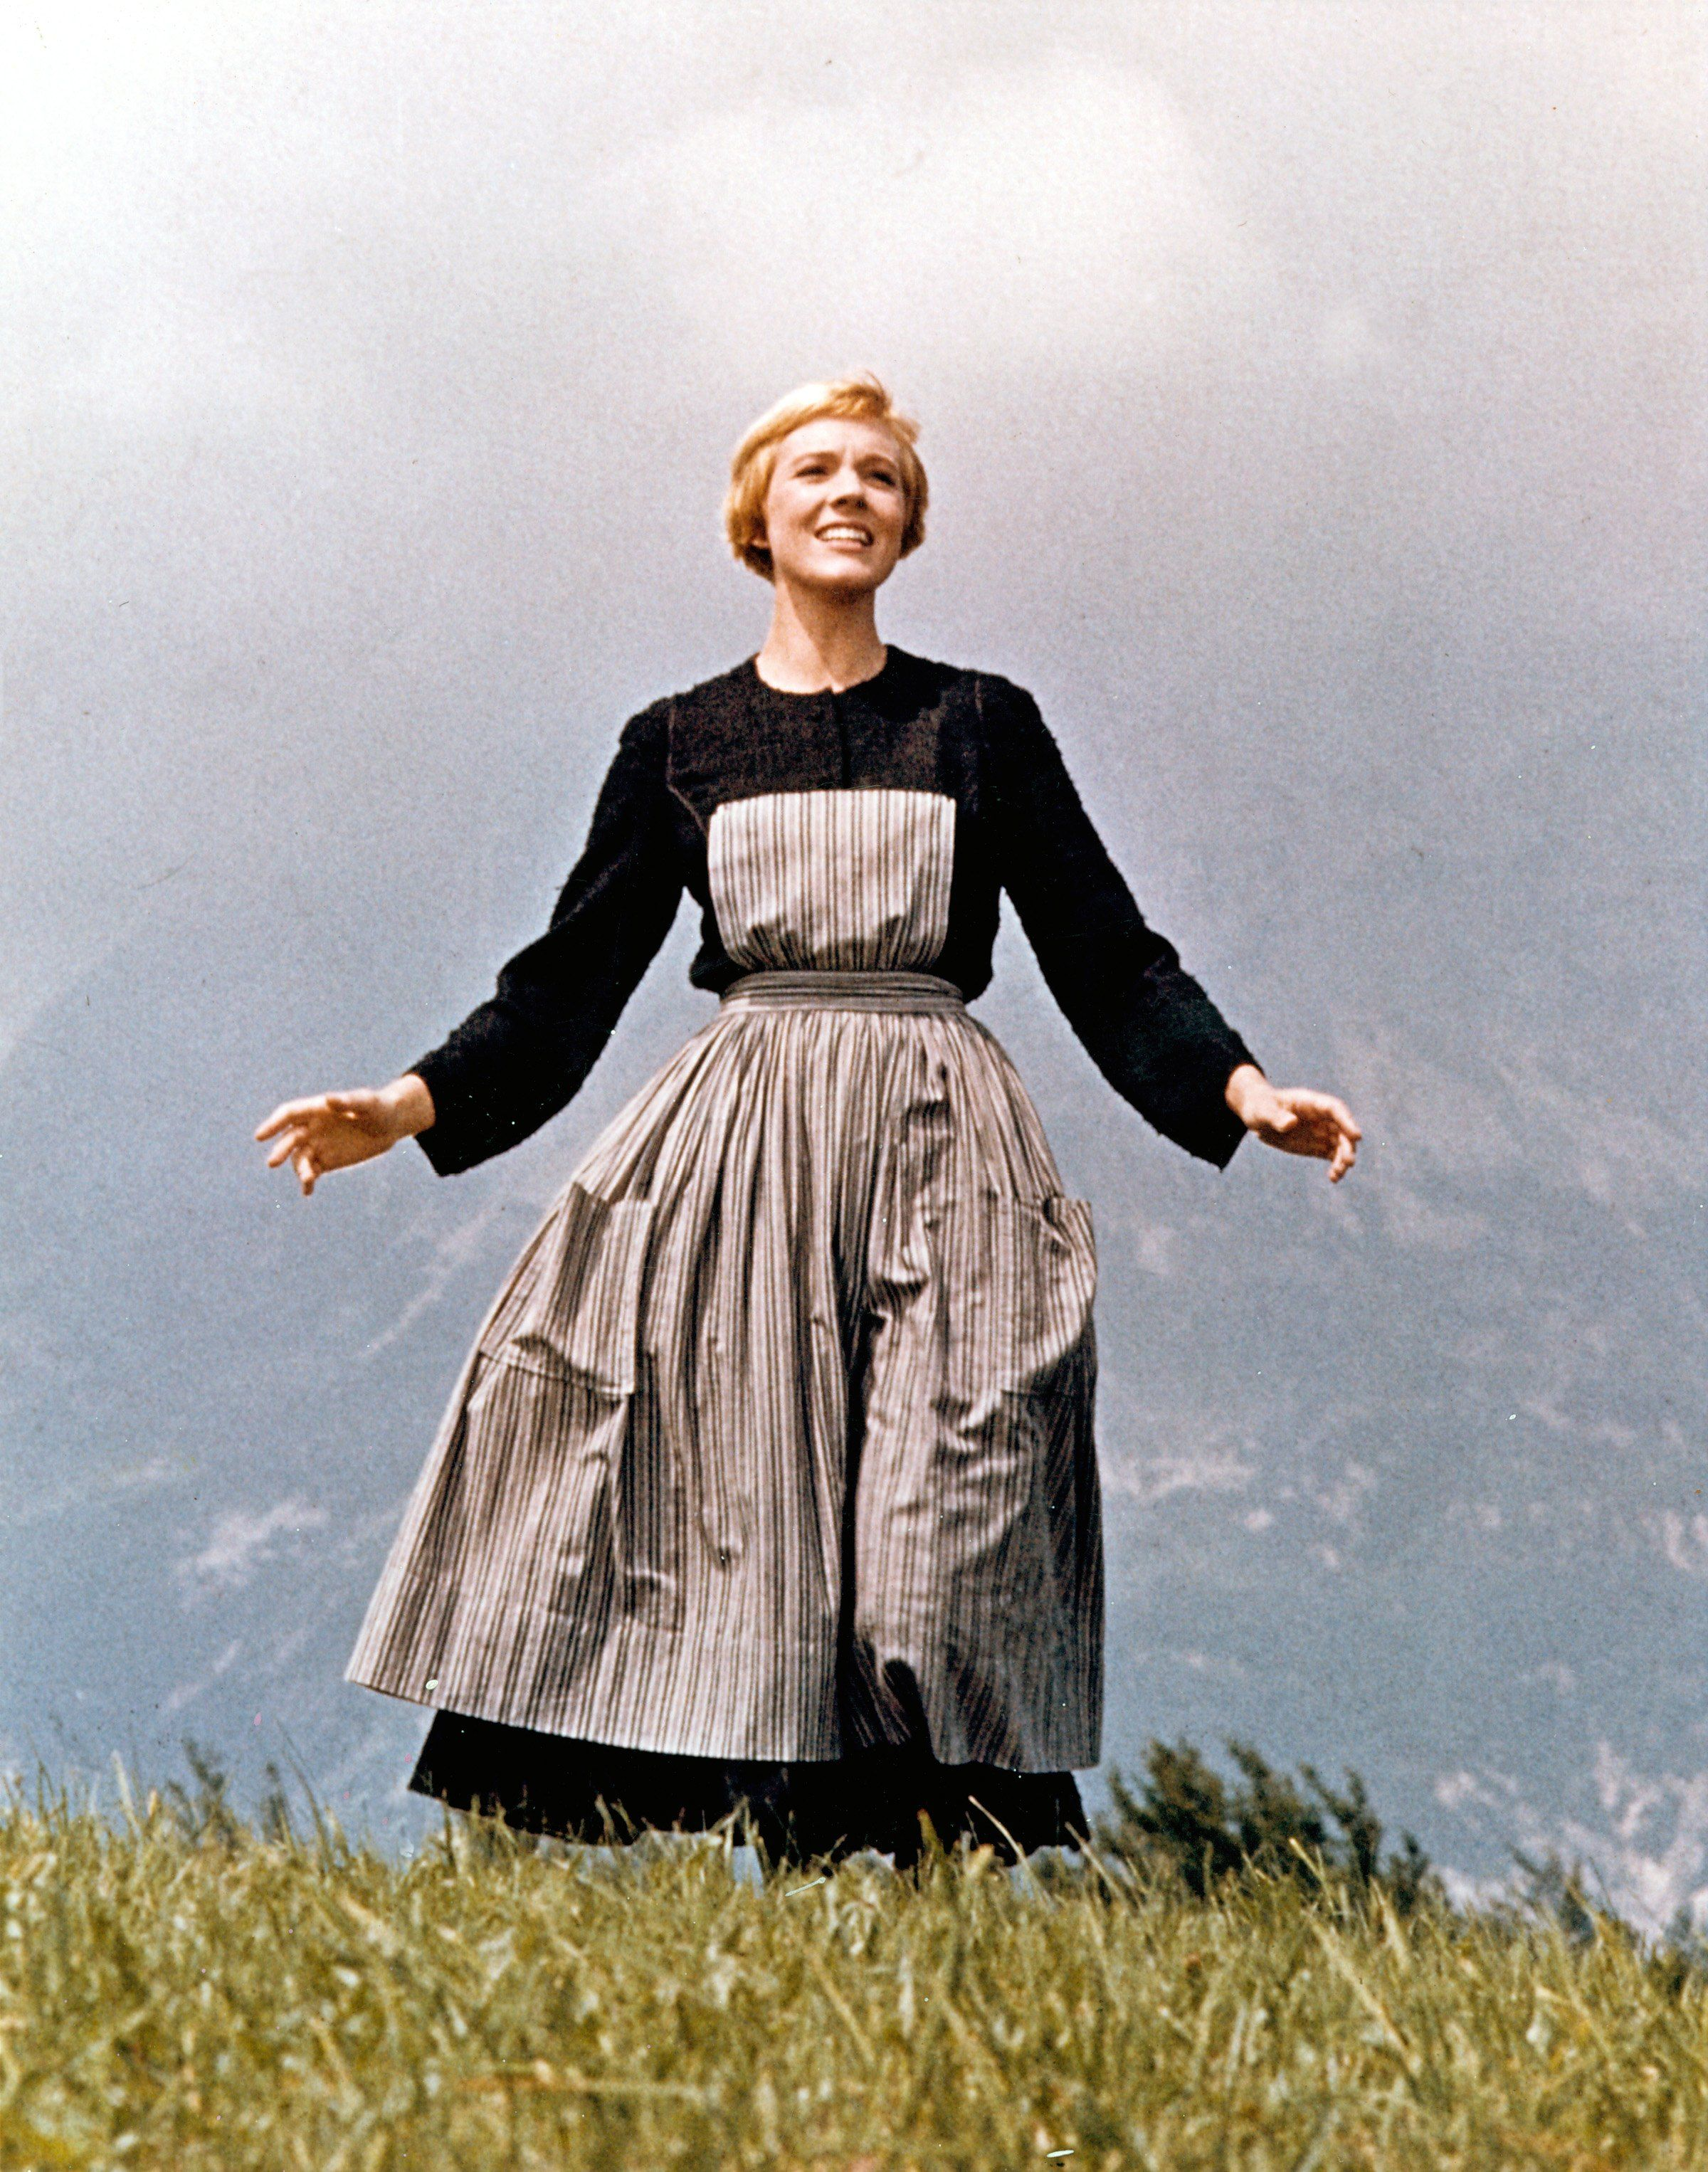 14 Stunning Photos Of Julie Andrews Over The Years Academy Awards Best Picture Sound Of Music Sound Of Music Movie